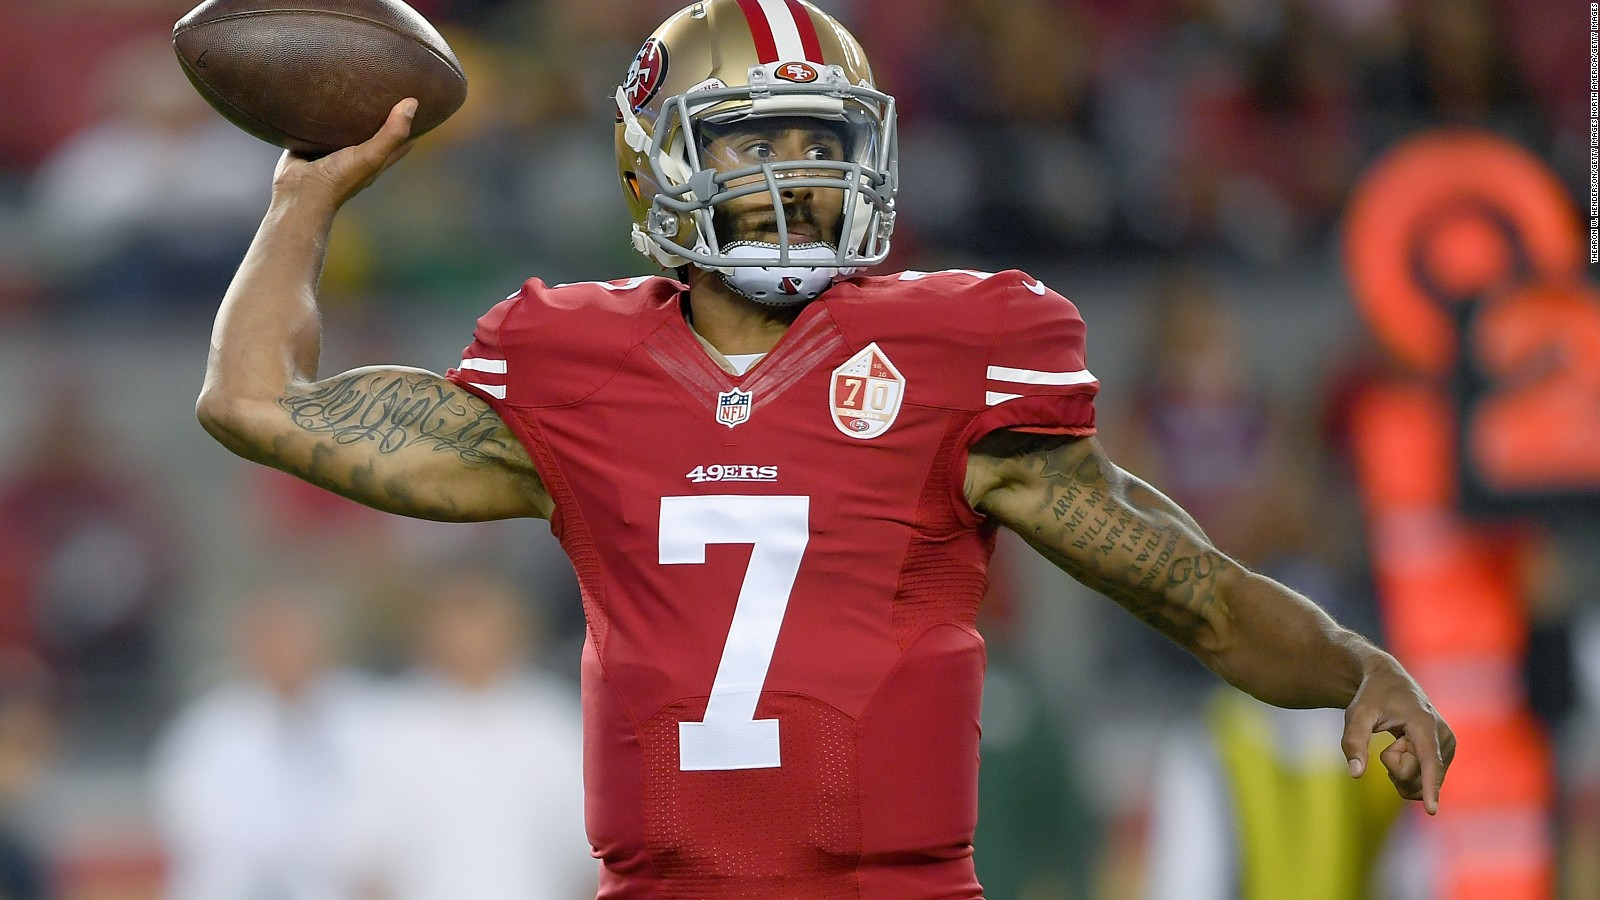 6a0ffb3d6 ... NFL star Colin Kaepernick sits in protest during national an San  Francisco 49ers ...